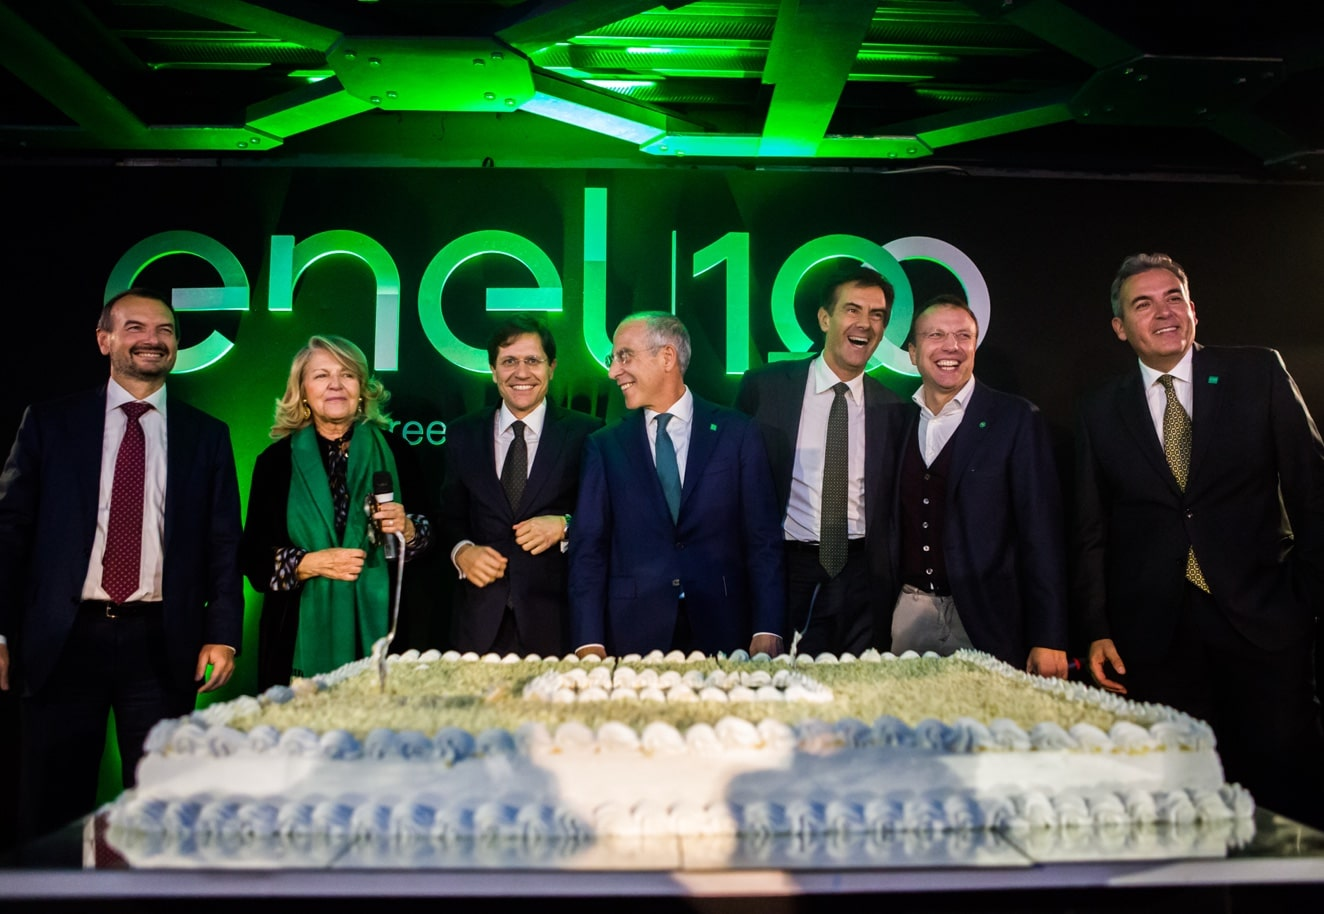 Corporate event management for Enel Green Power business anniversary